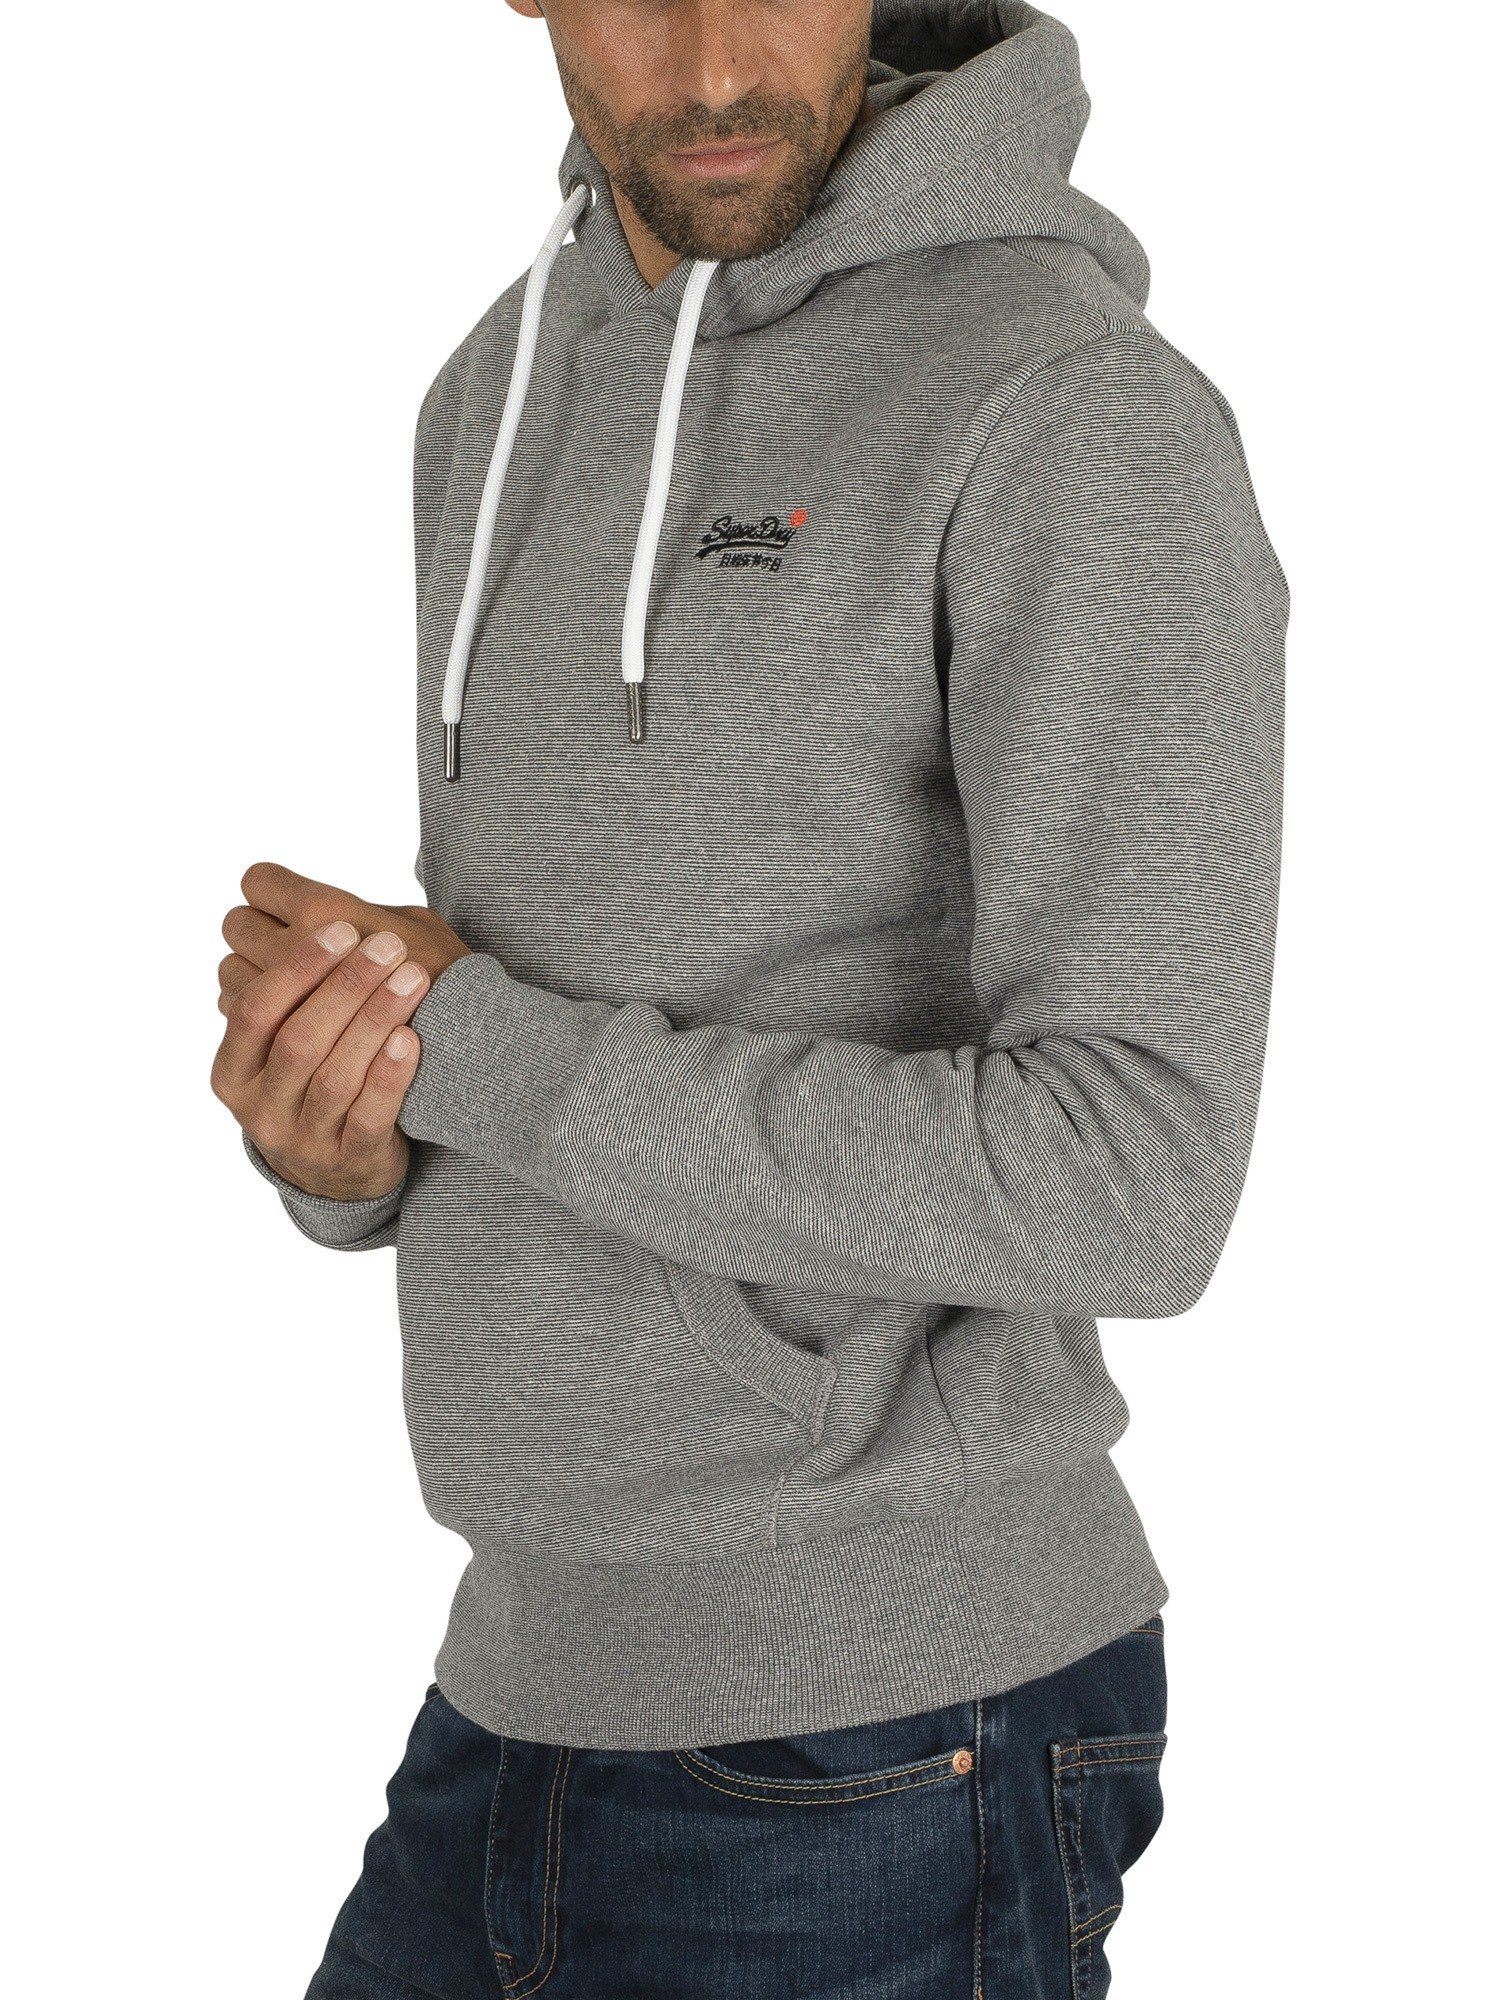 finest selection 5e824 1ca3c Superdry Orange Label Classic Pullover Hoodie - Hammer Grey Feeder